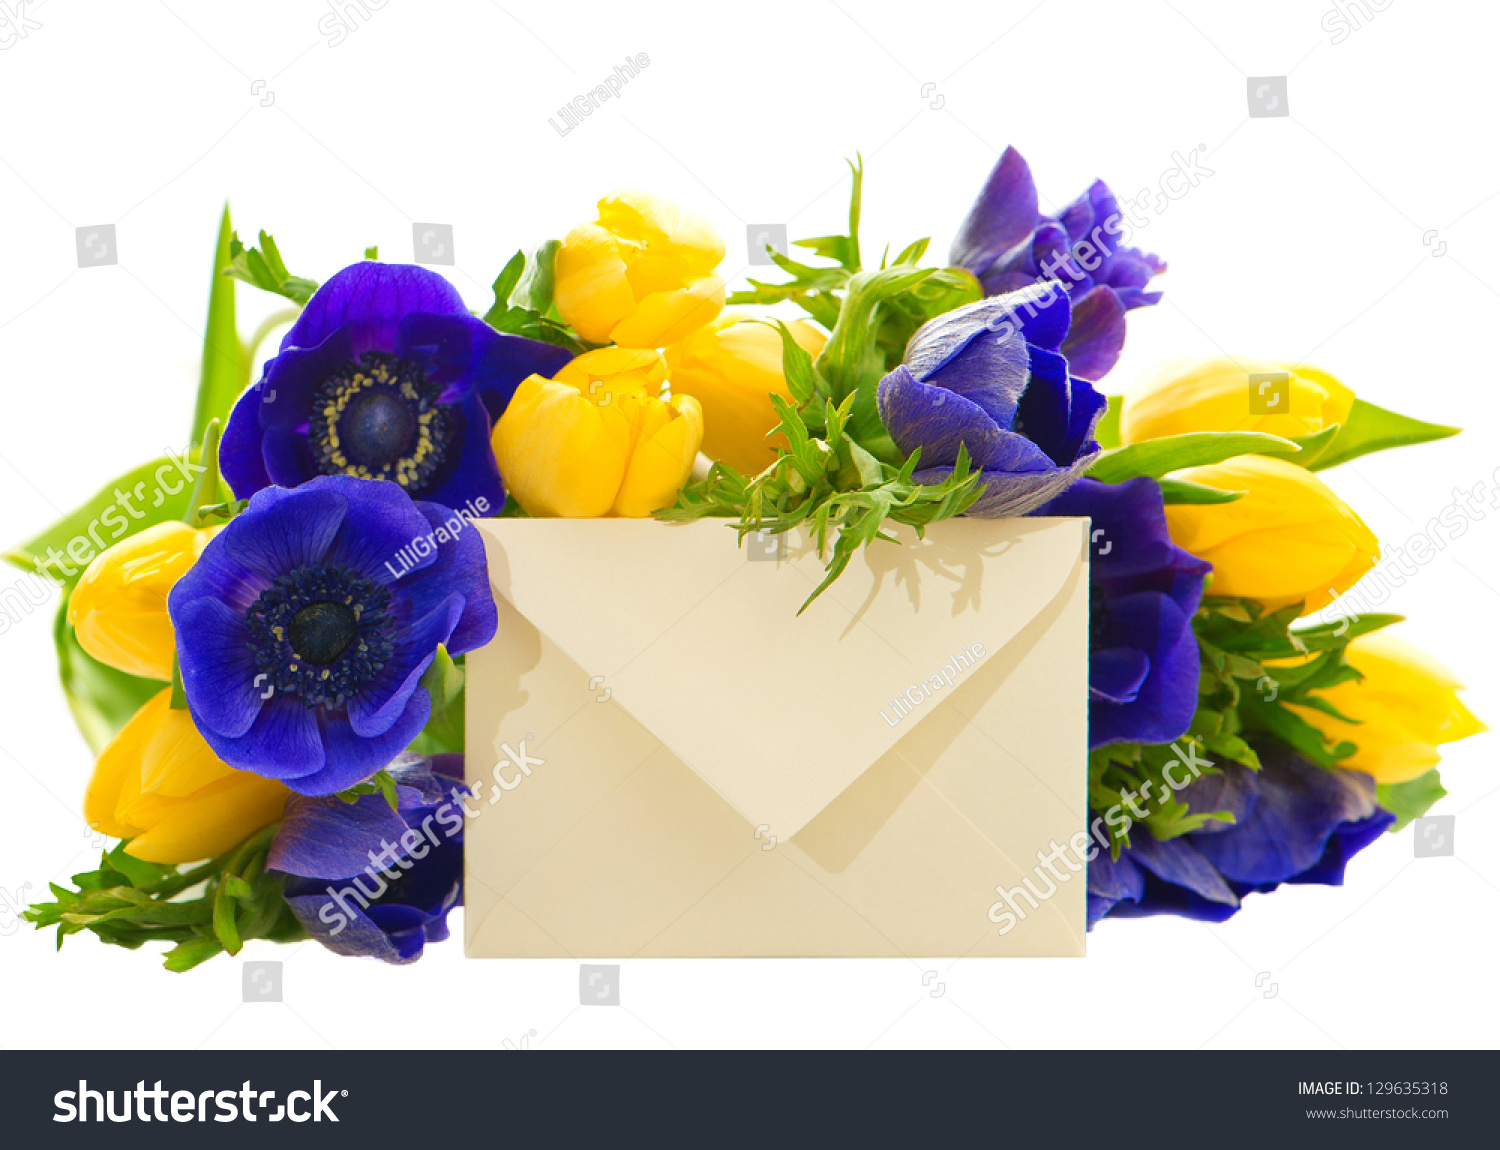 Colorful flowers bouquet gift card yellow stock photo 129635318 colorful flowers bouquet with gift card yellow tulips and blue anemone on white background izmirmasajfo Image collections